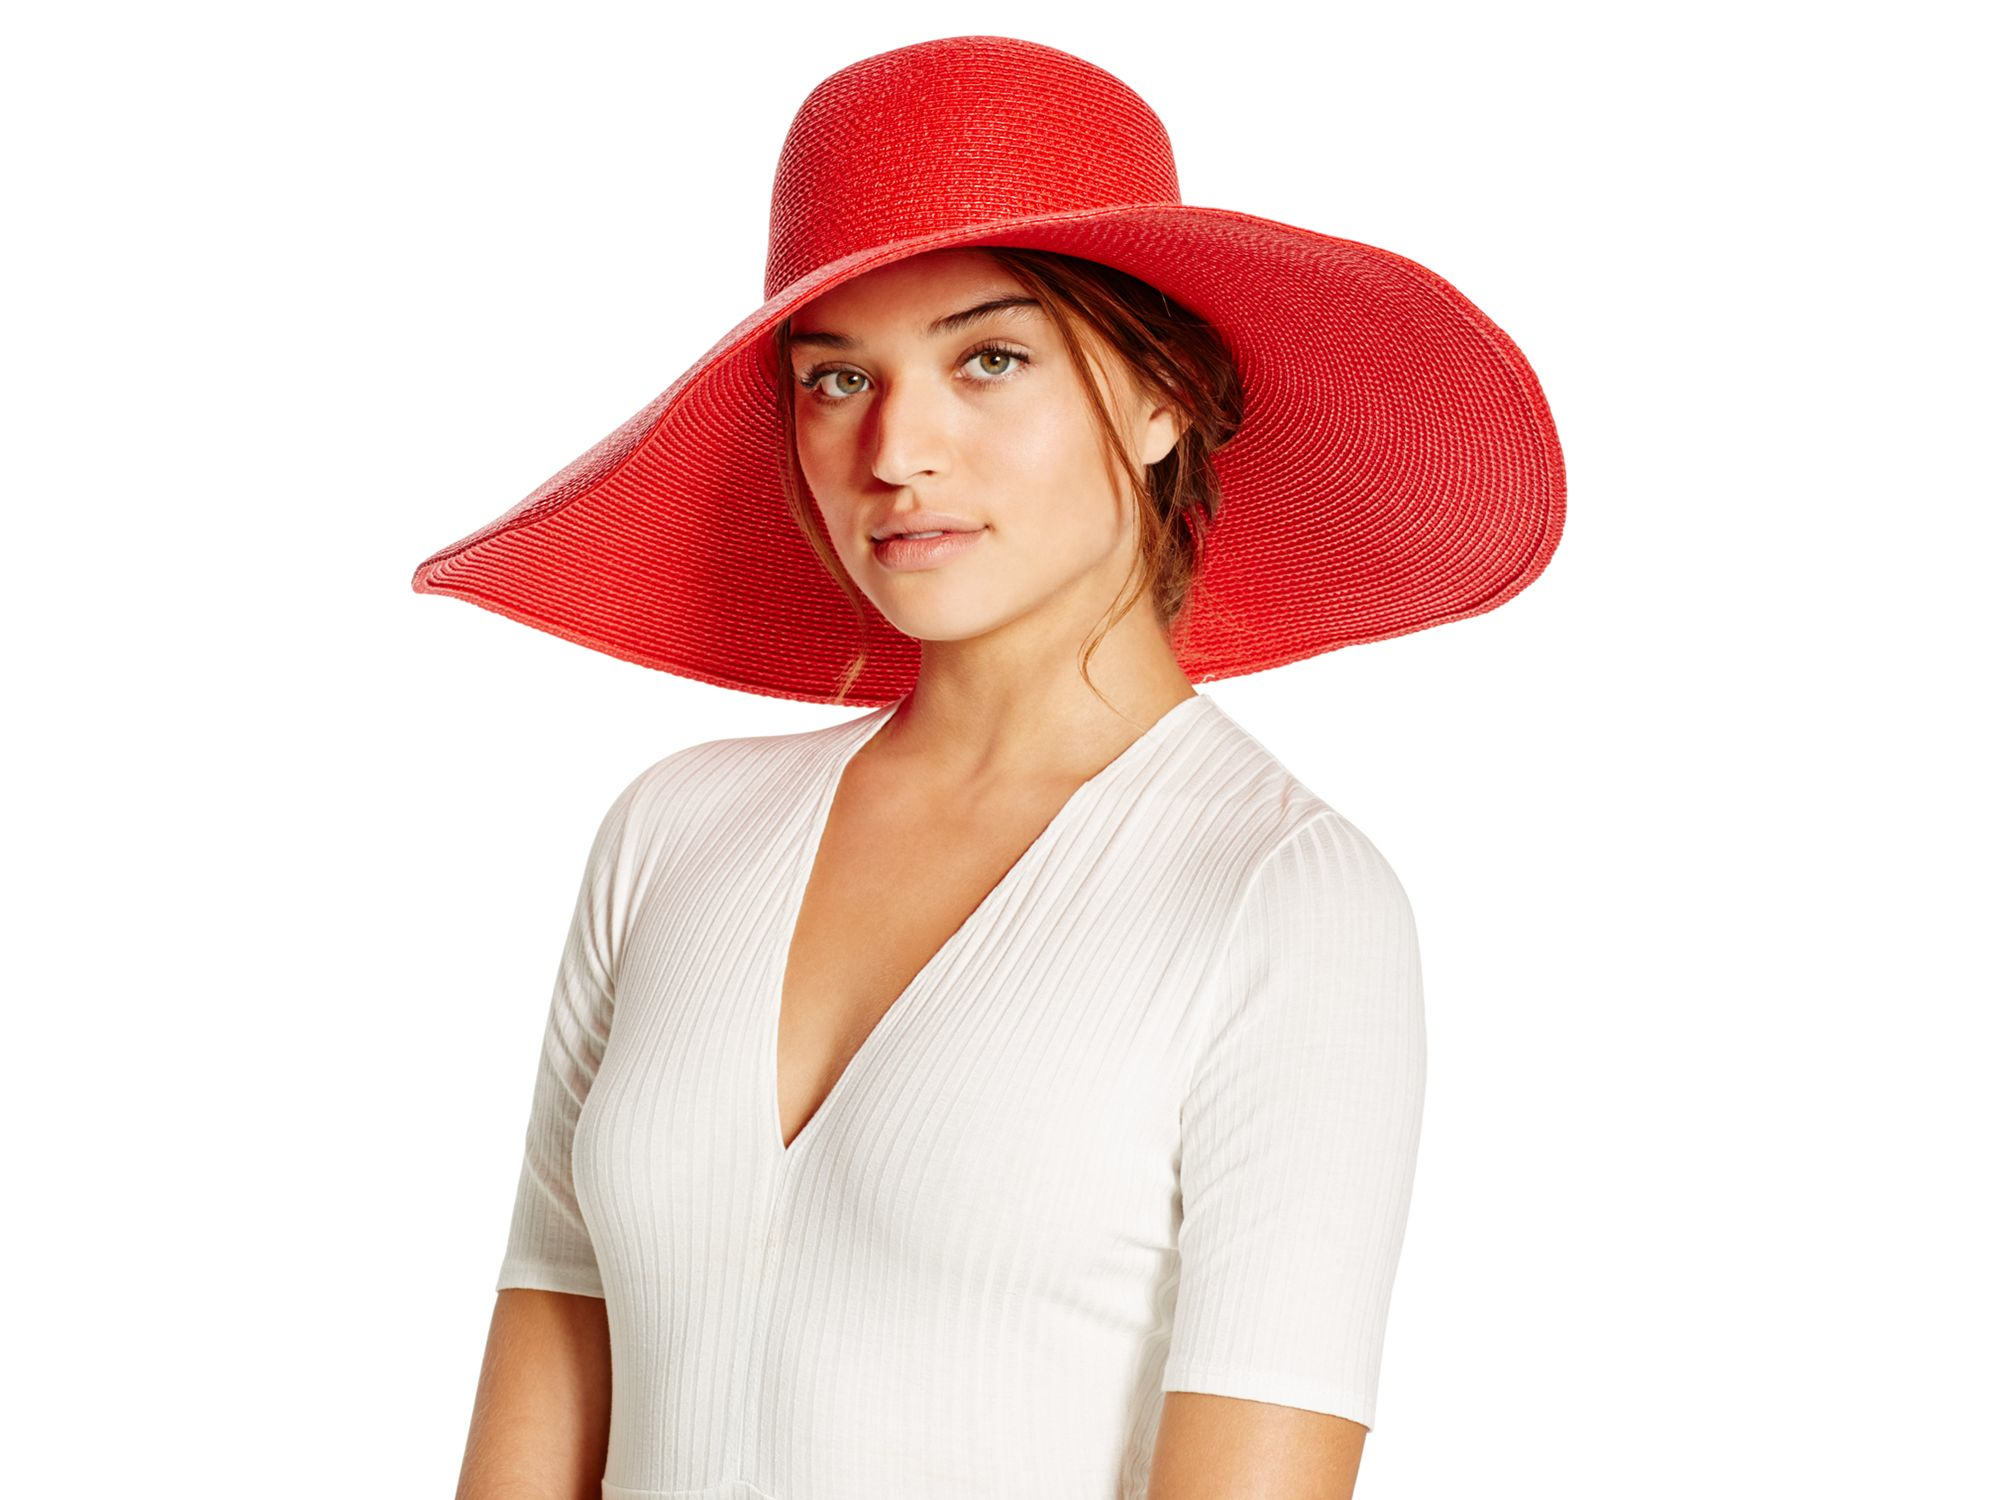 Lyst - Eric Javits Floppy Hat in Red 262ba11a59cf